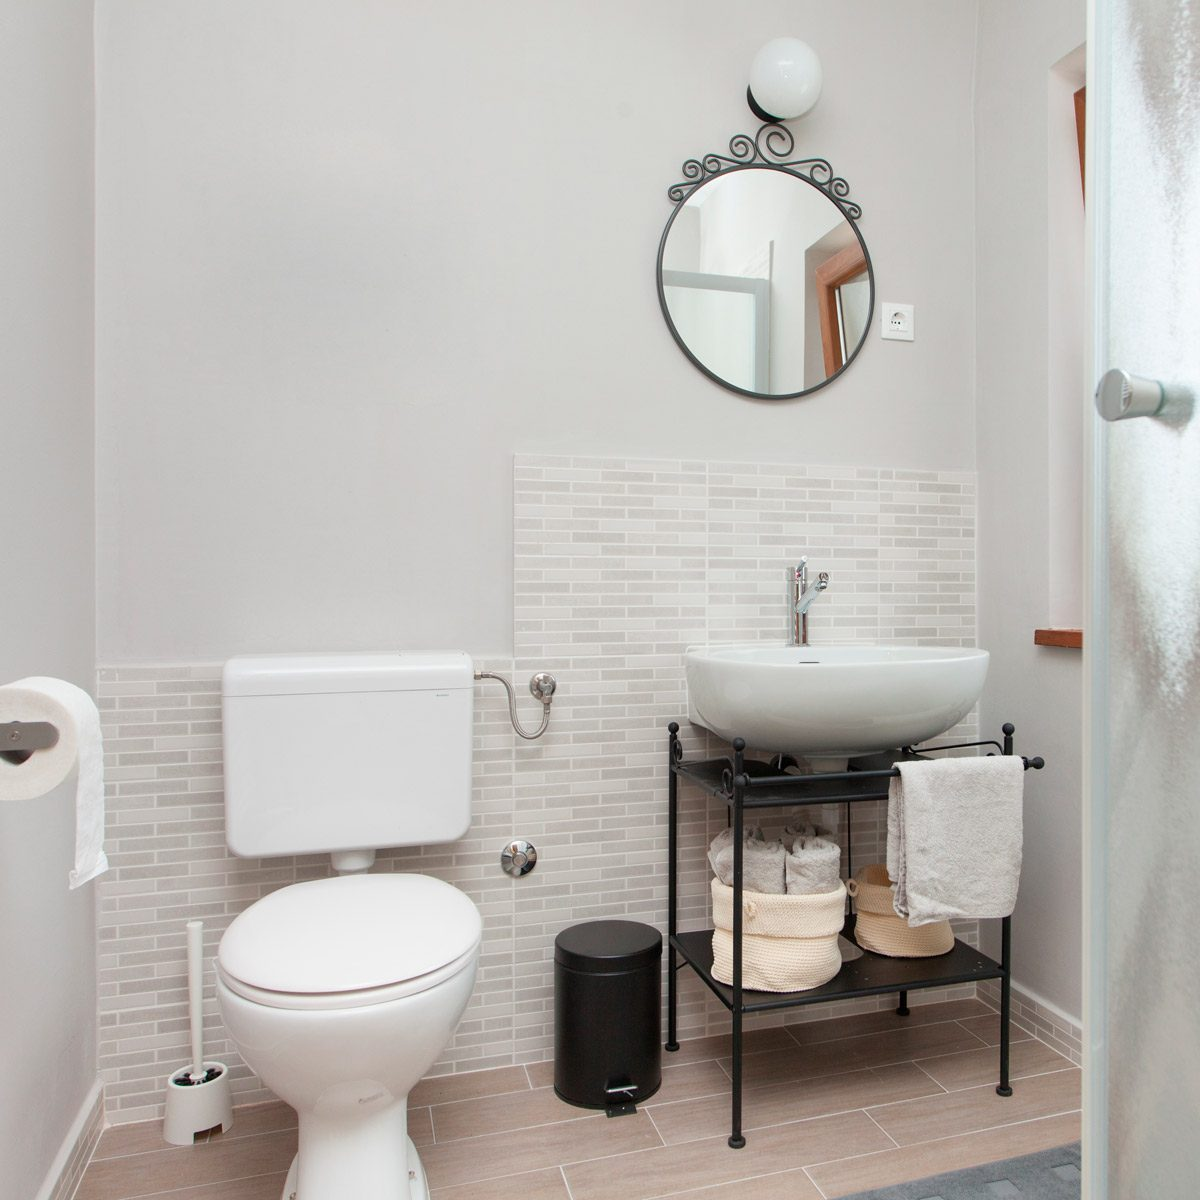 Bathroom Ideas: 10 Small Bathroom Ideas That Make A Big Impact